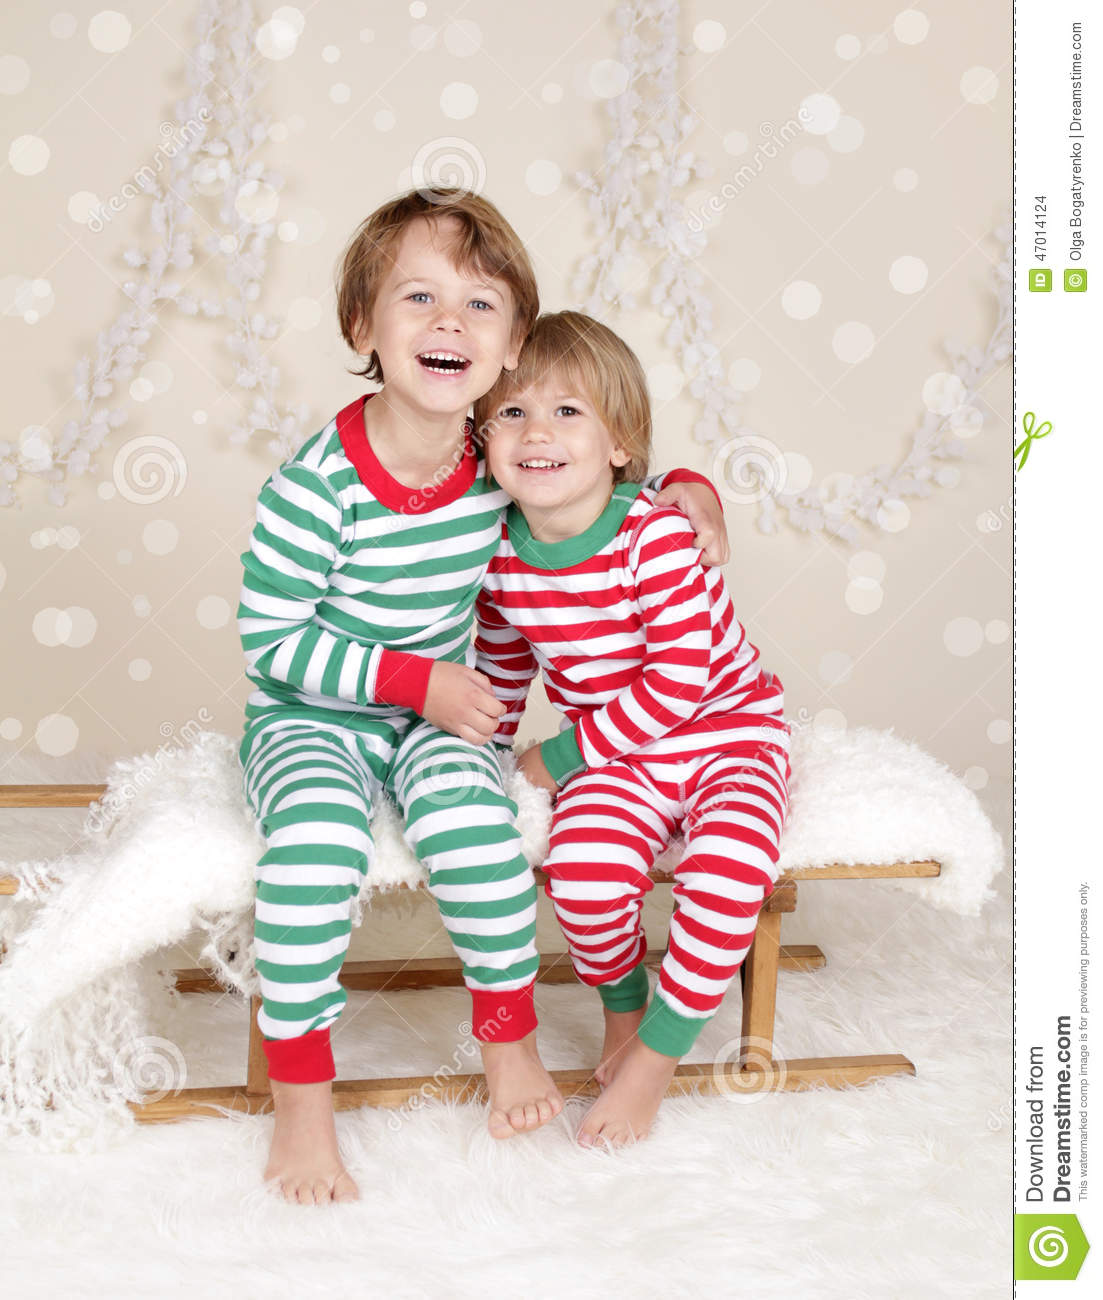 Winter Holidays: Laughing Happy Kids In Christmas Pajamas Sled I ...